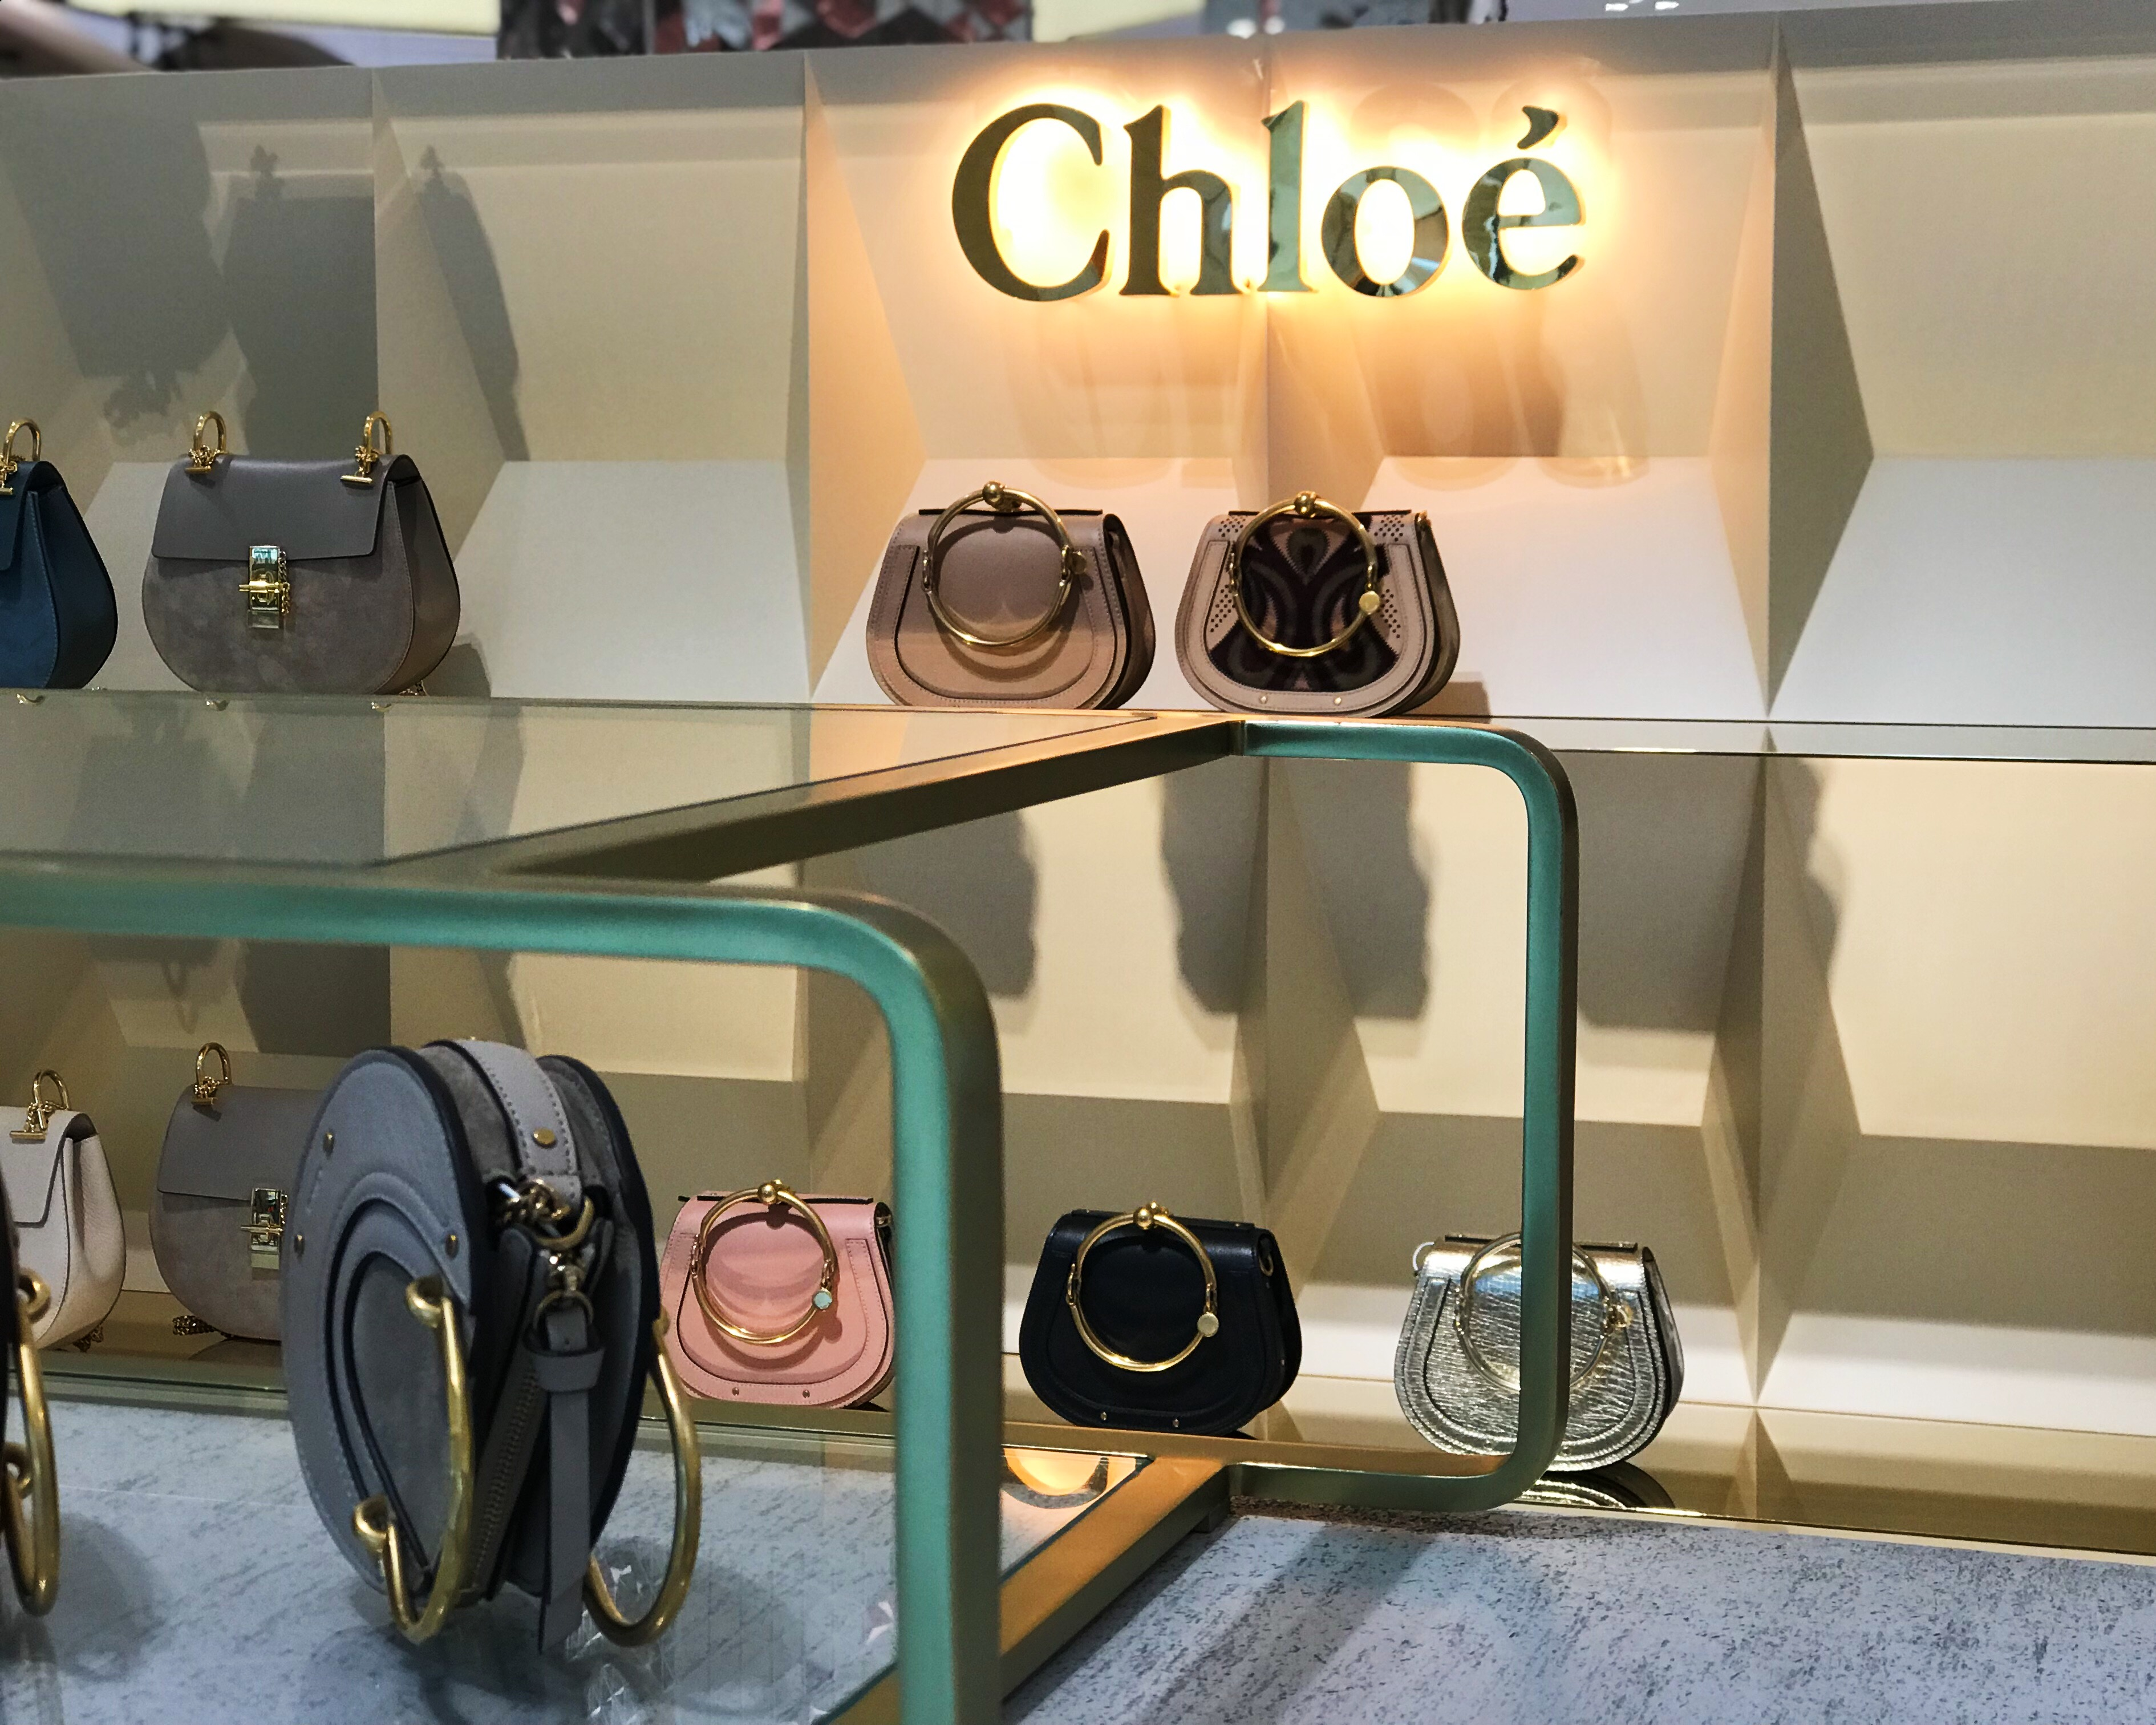 Chloe | Fashion | 680-18, Chloe, Chloe, Pop-Up Stores, Tryano | Yas Mall | Abu Dhabi